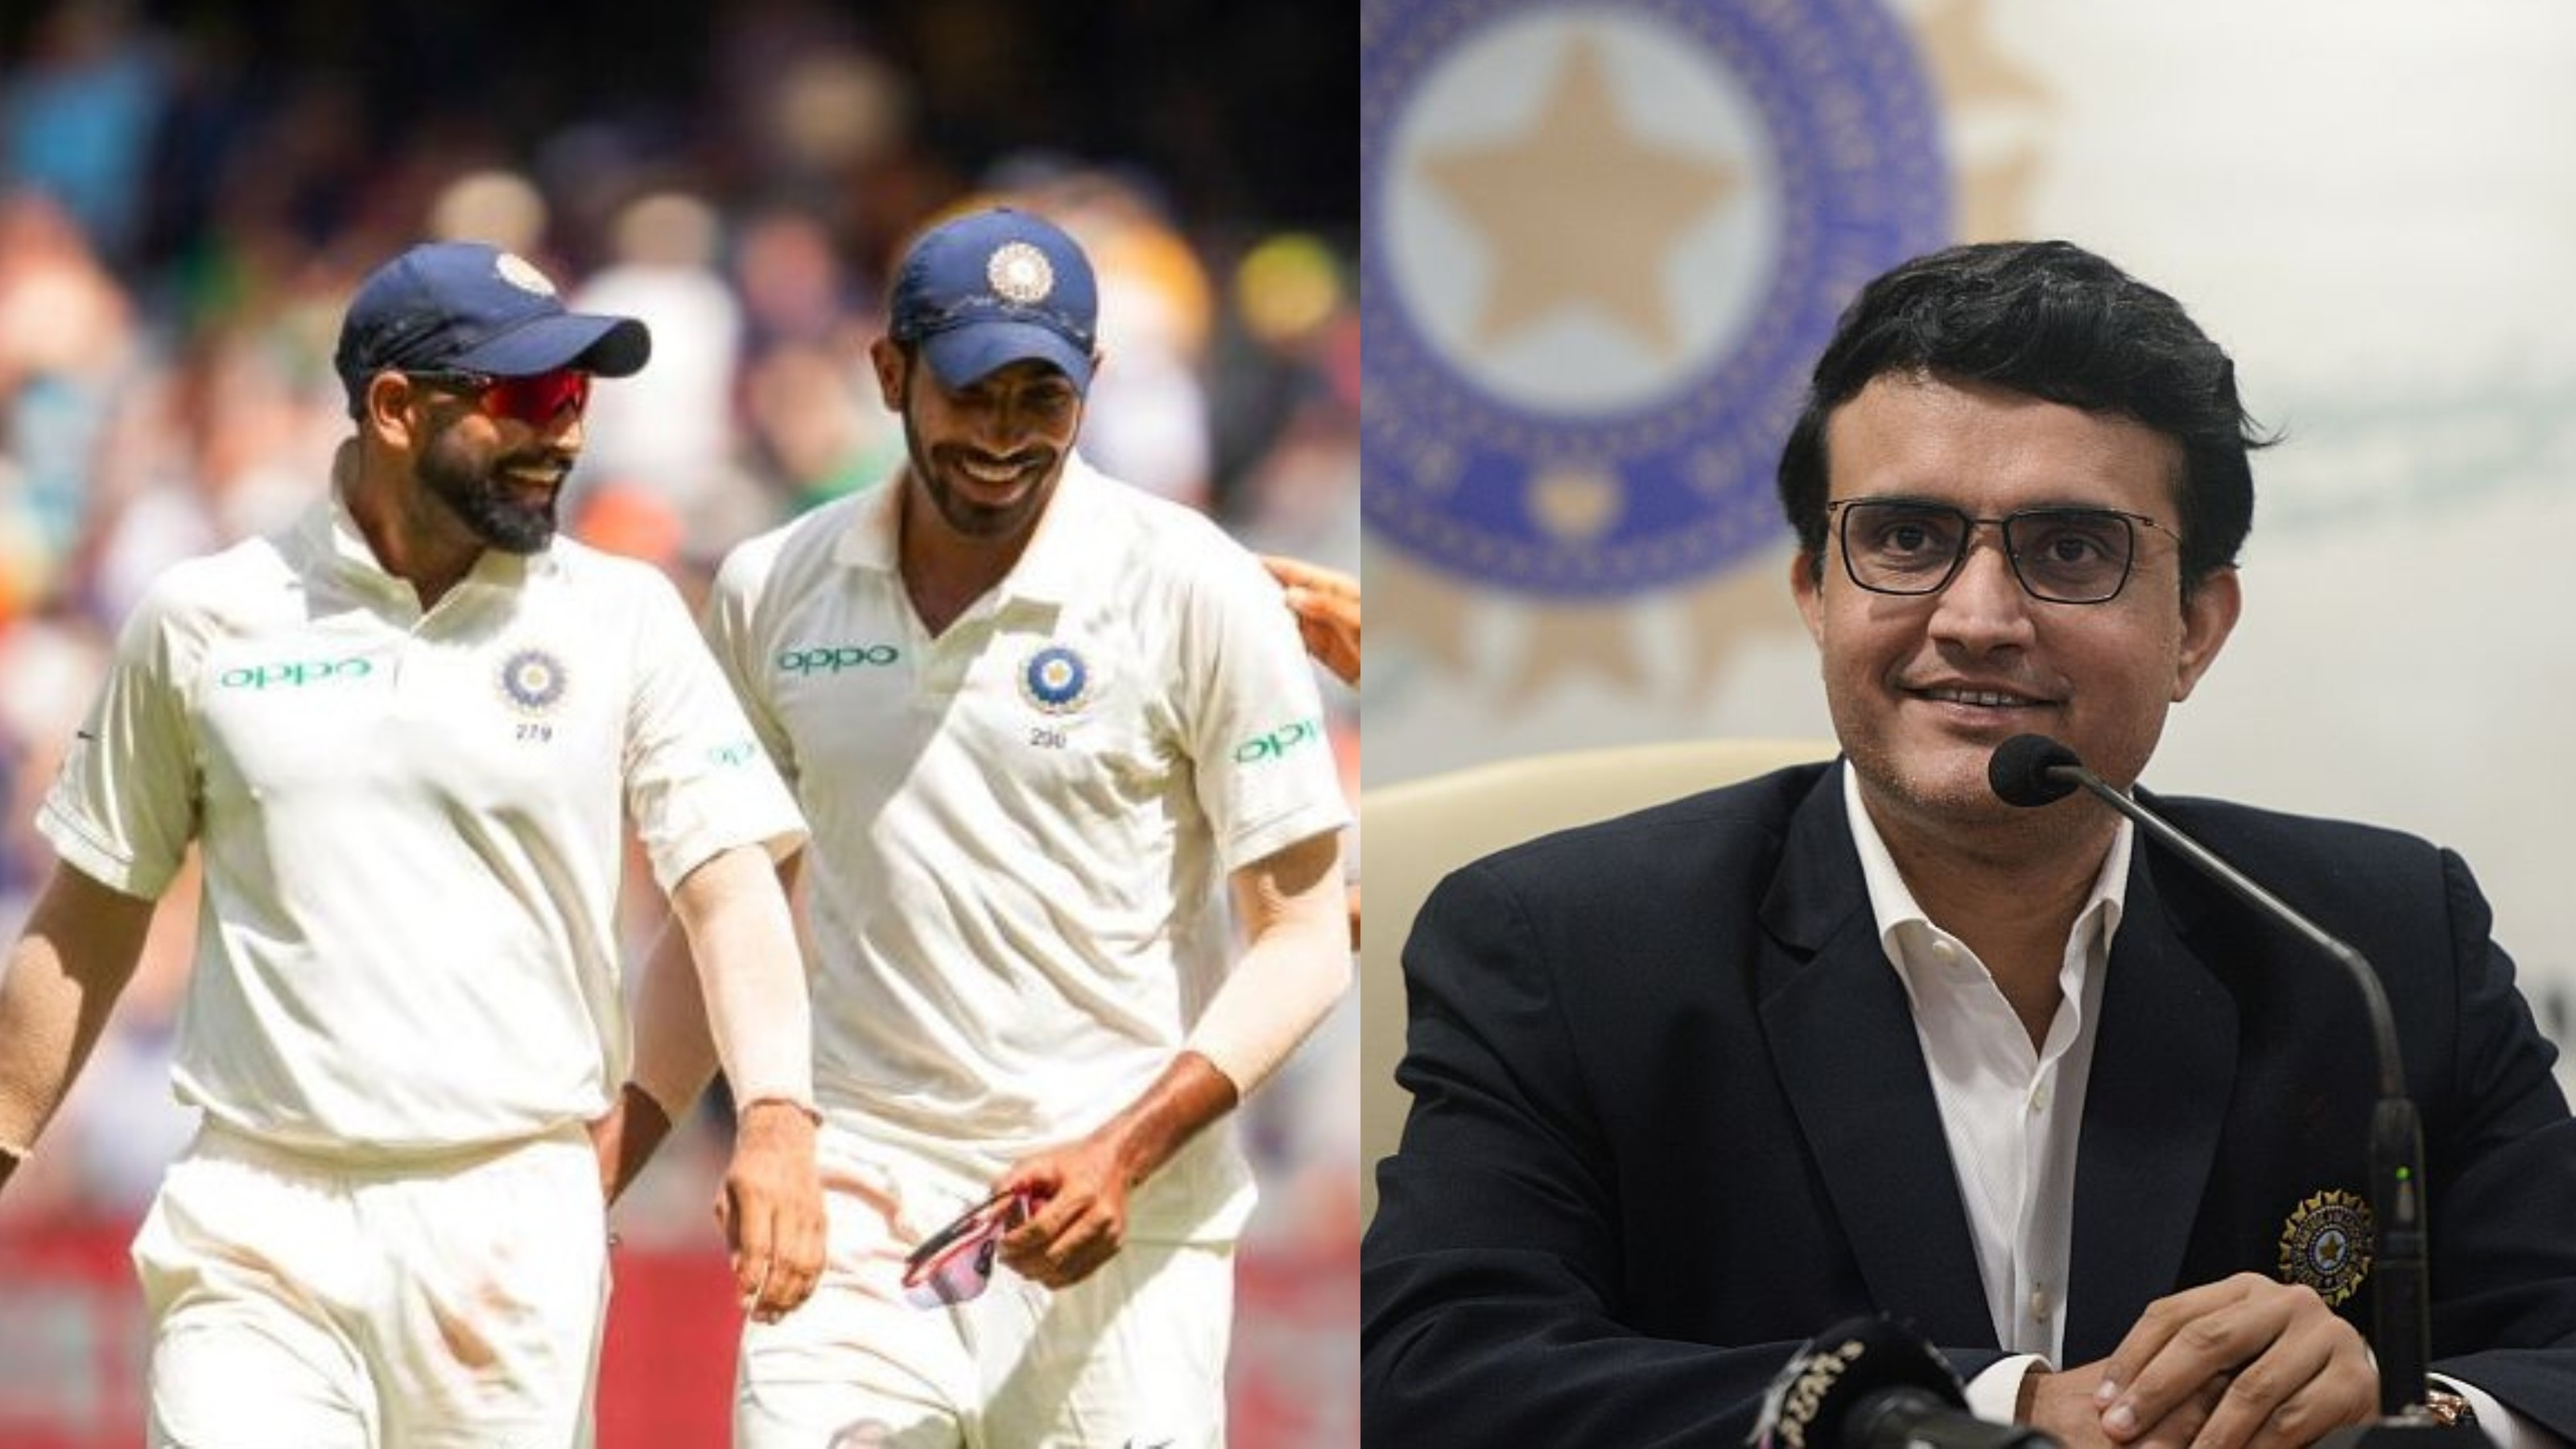 WATCH - Sourav Ganguly explain key factors behind India's fast-bowling rise